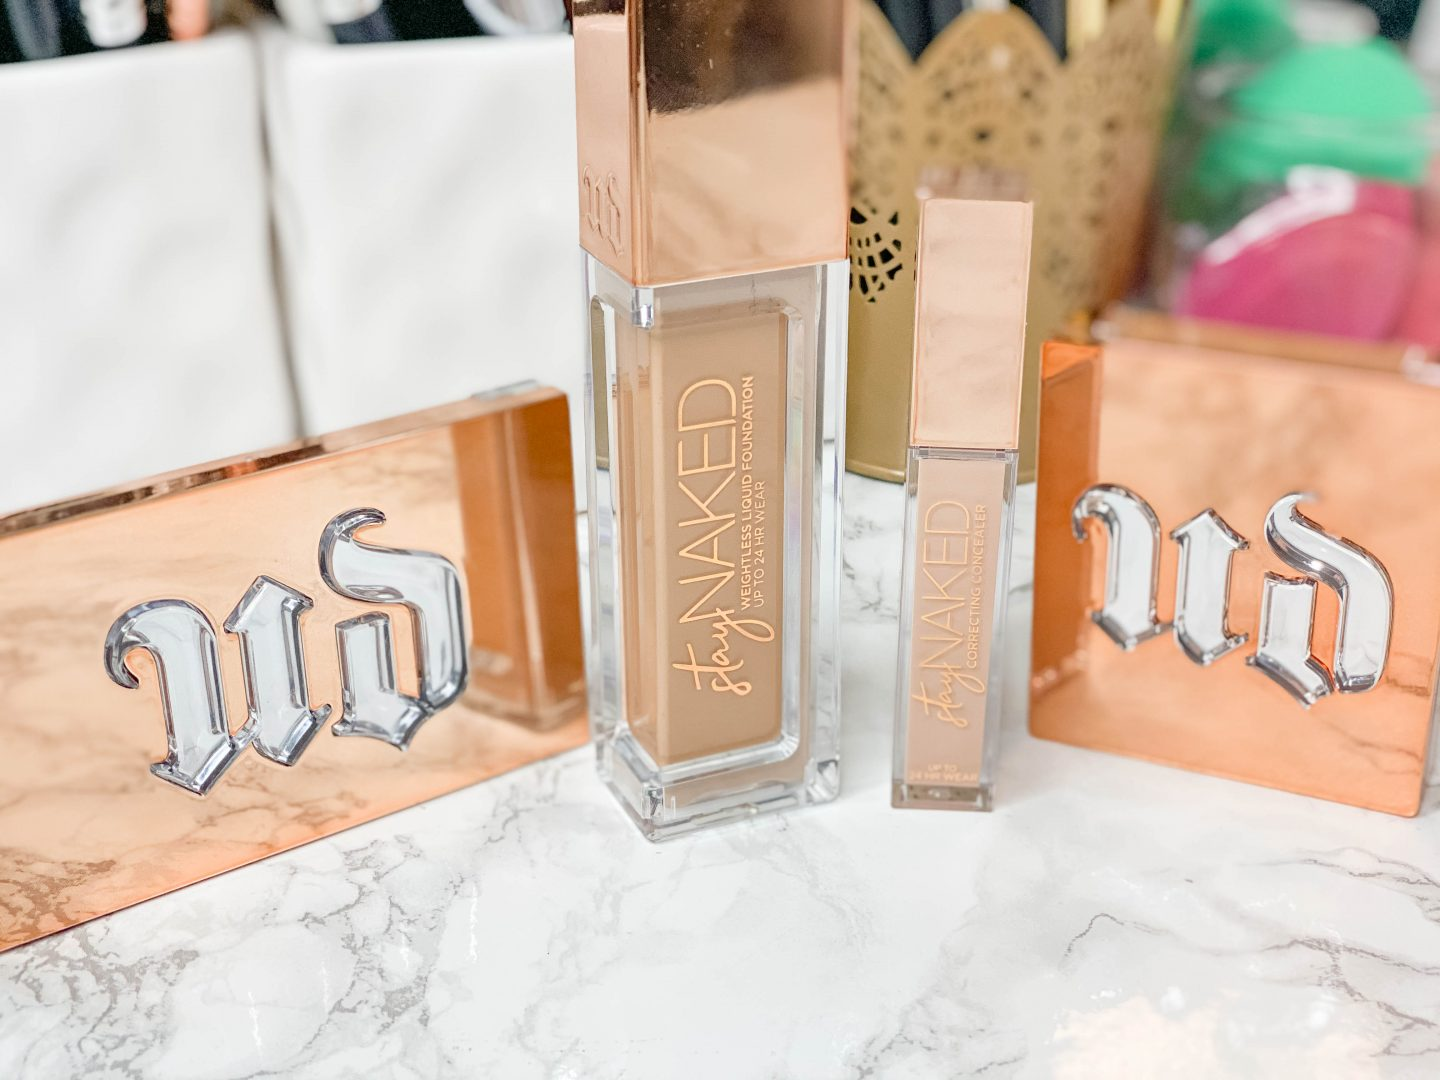 Urban Decay Stay Naked Review - Jasmine Maria